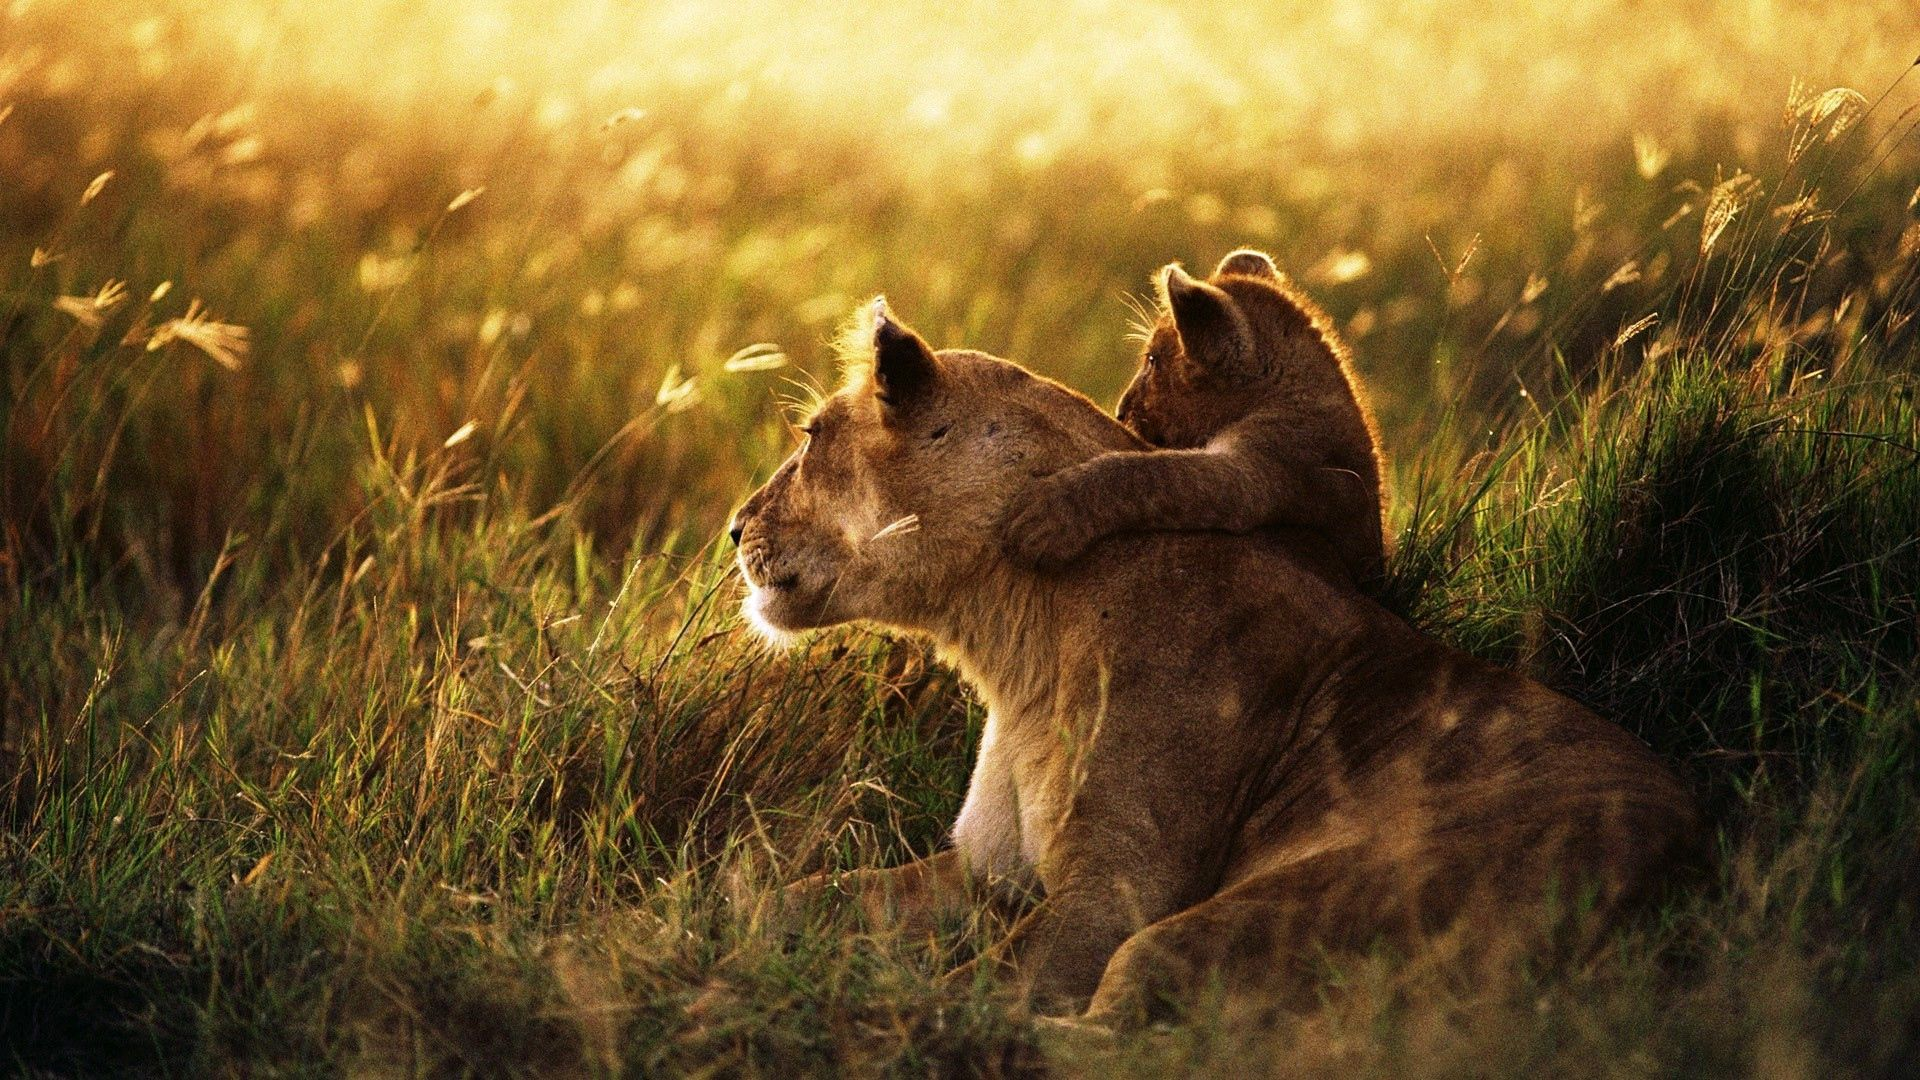 114039 download wallpaper Animals, Young, Lion, Lioness, Family, Kid, Tot, Care, Joey, Sunlight, Lion Cub screensavers and pictures for free